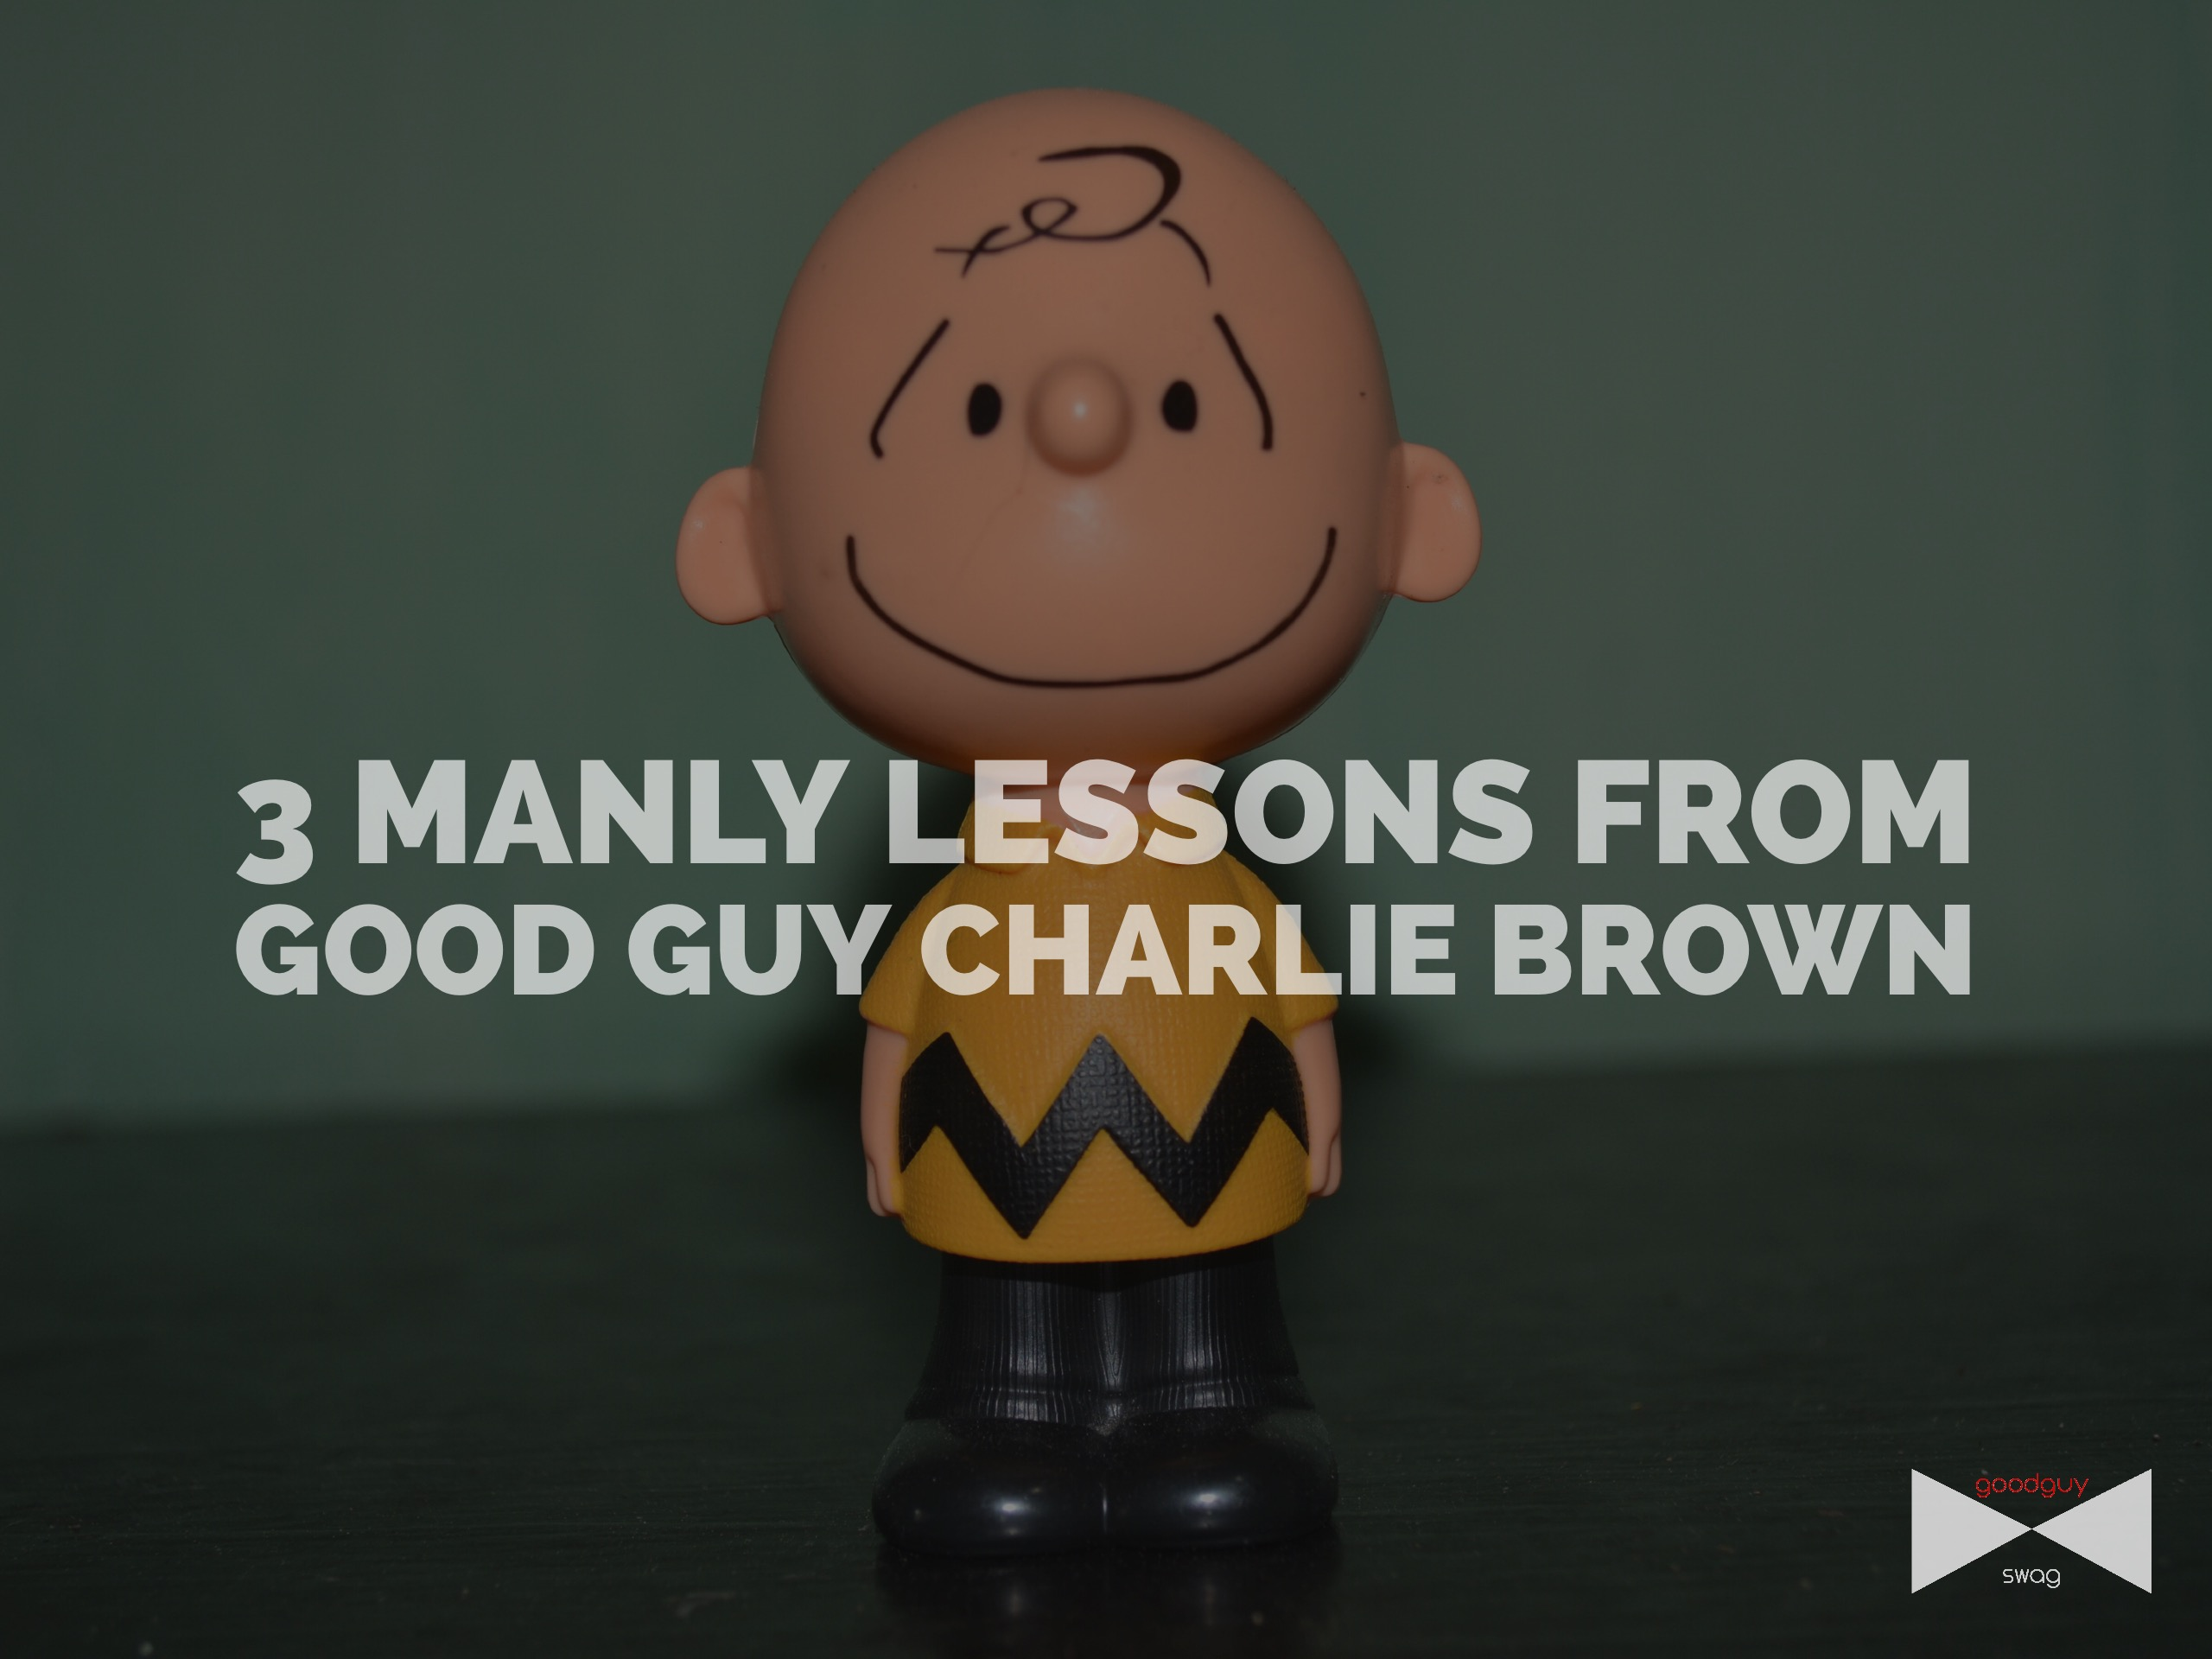 Good Guy Charlie Brown